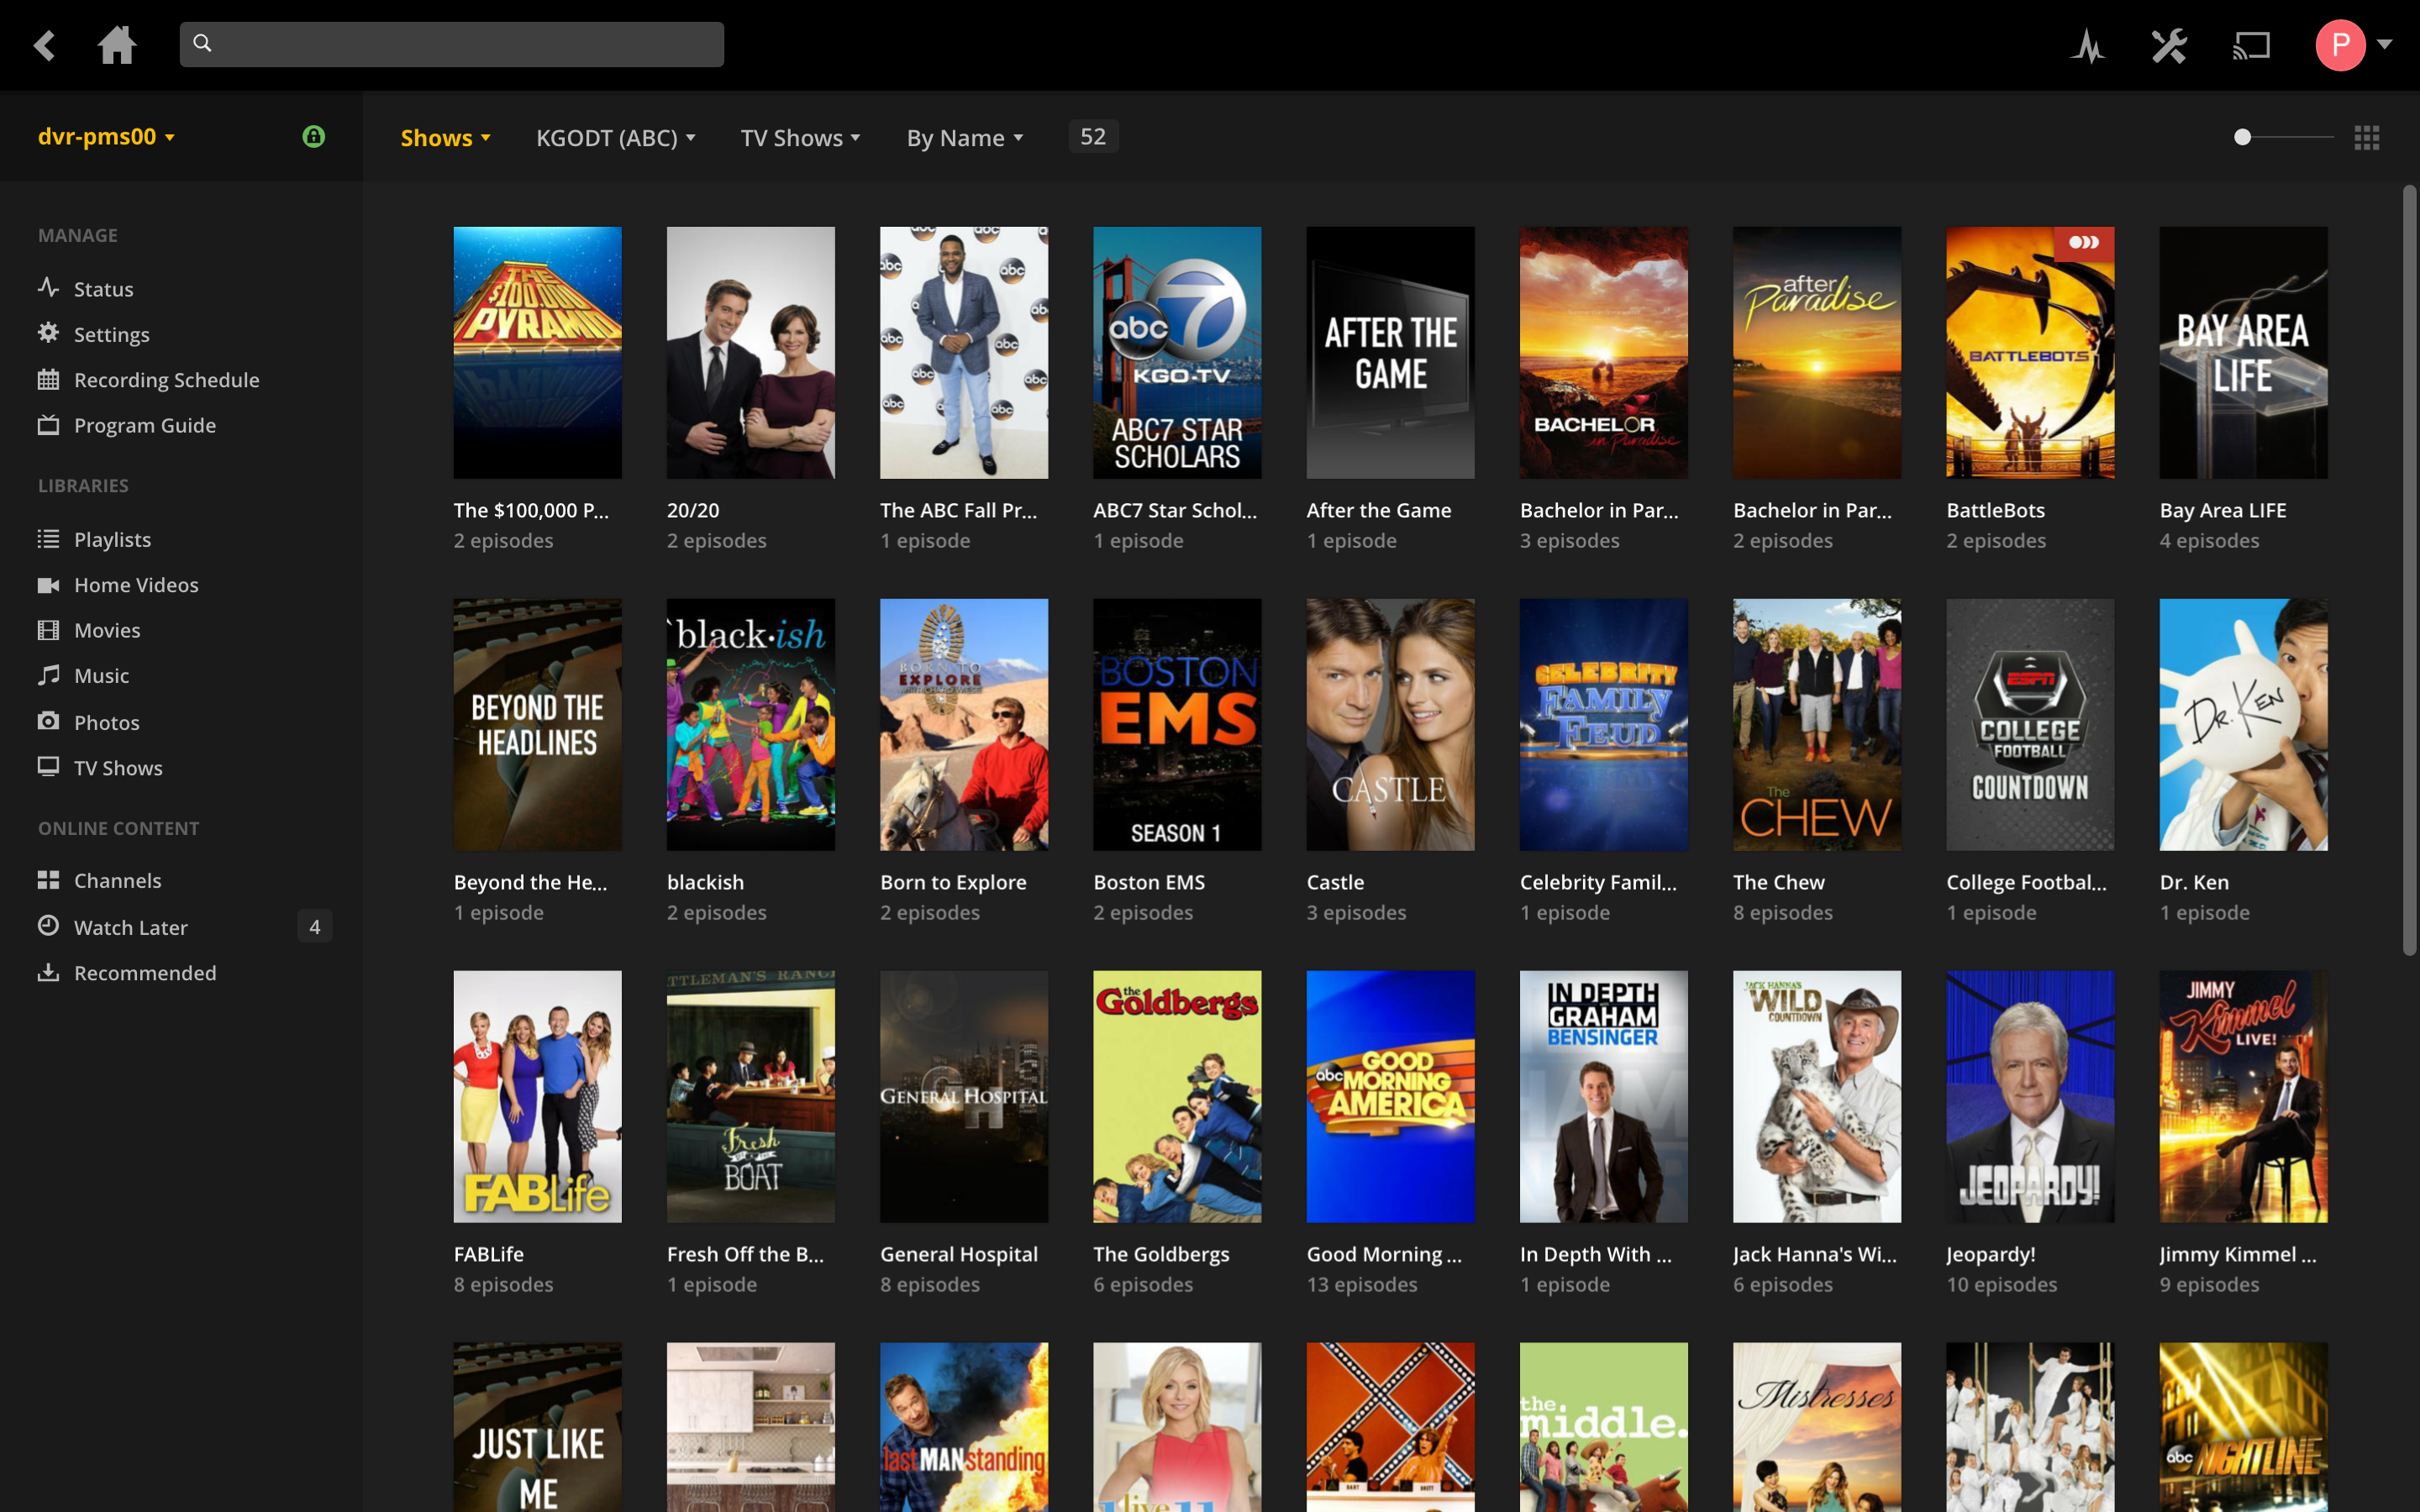 Plex goes after cord cutters with new DVR feature – TechCrunch